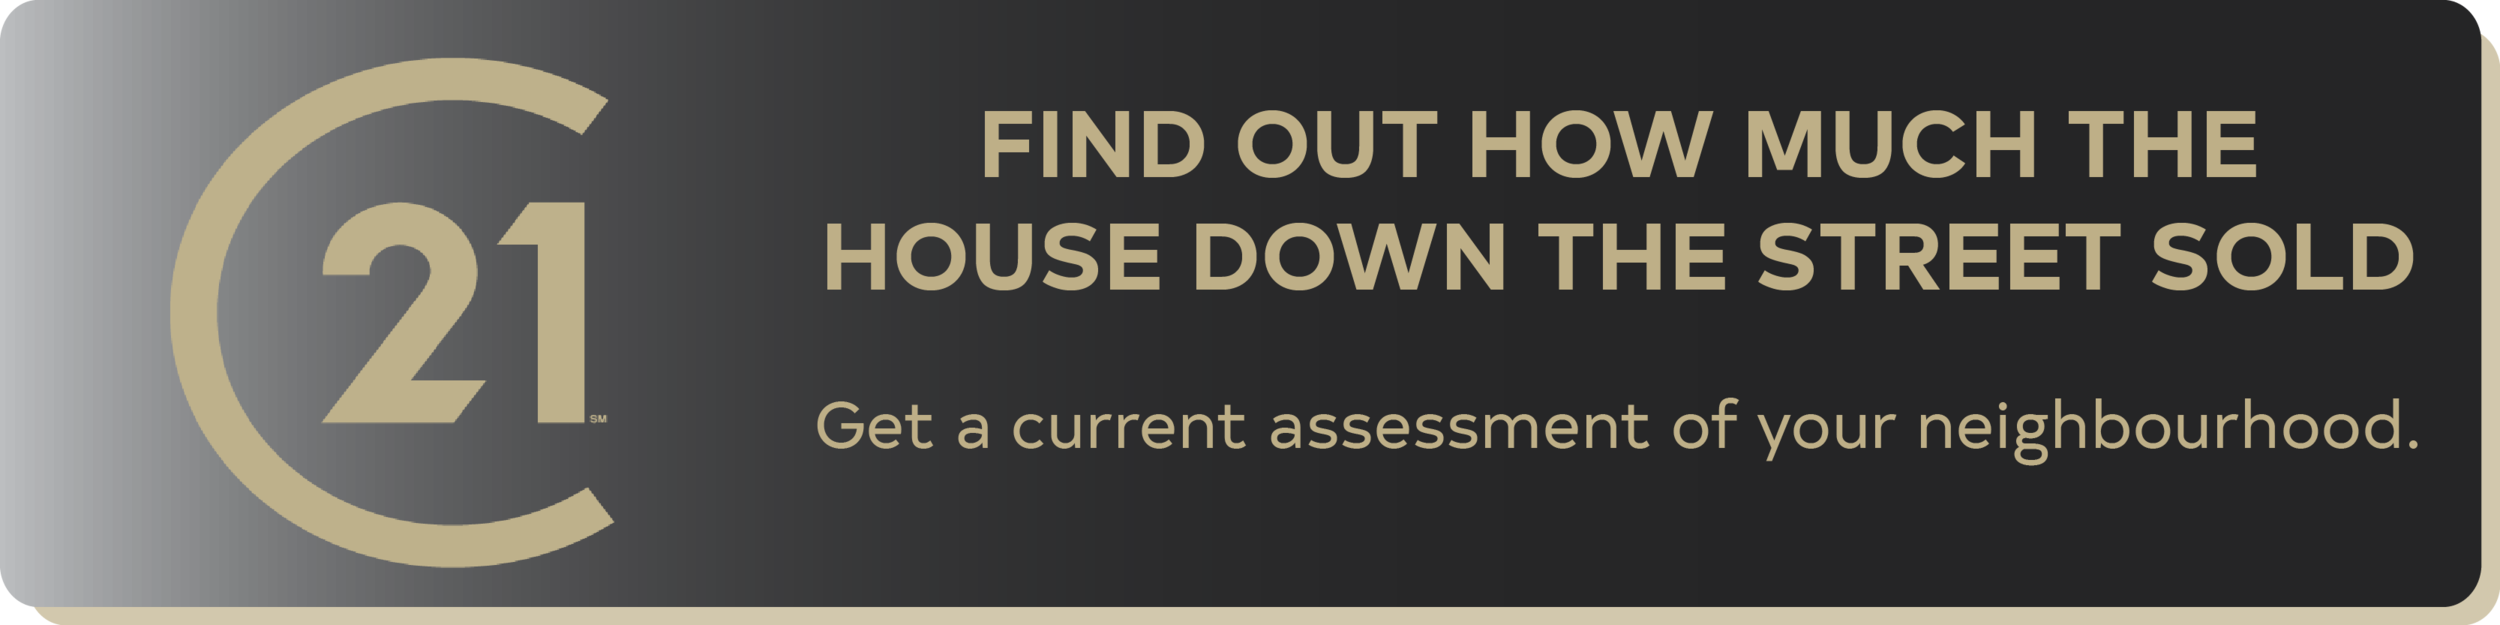 how much did the house down the street sell.png